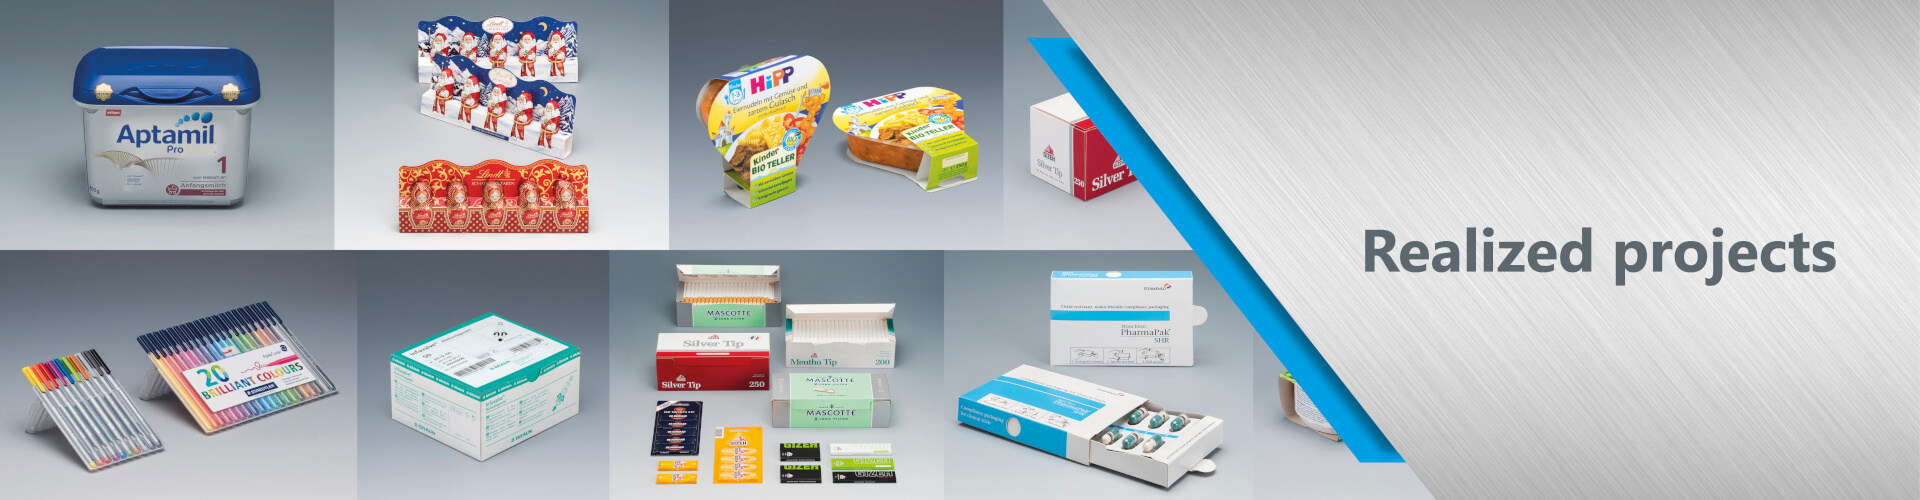 Our realized packagings range from stabilo folders to baby food.